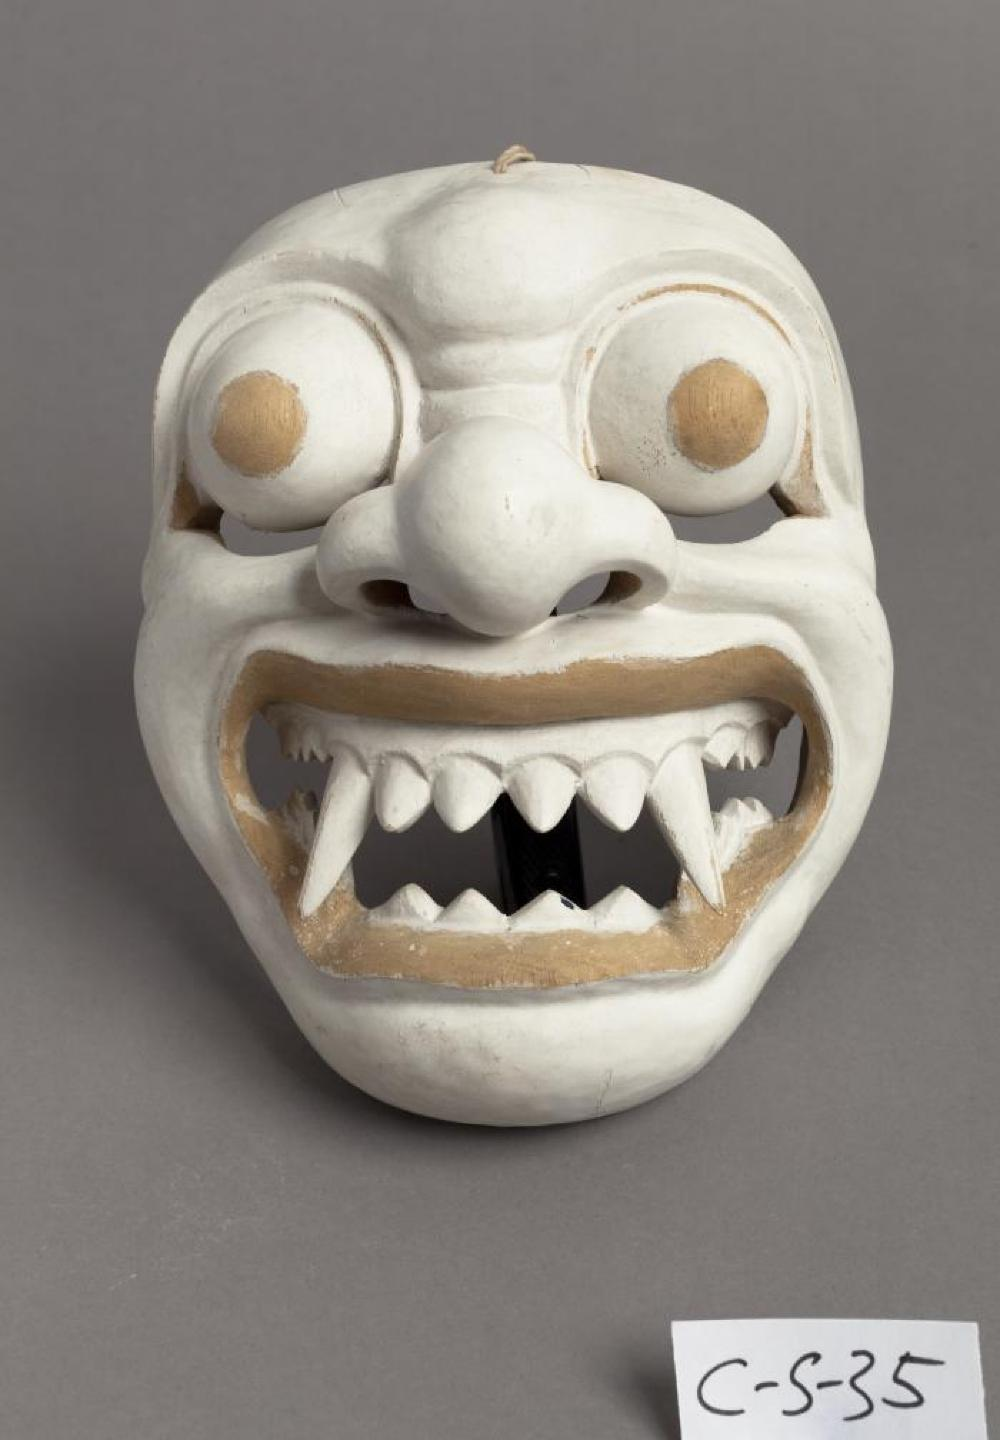 Balinese; Leyak Mask; 20th cenutry; Painted wood, string; 7 7/8 x 6 1/4 x 4 5/16 in.; Collection of Isamu Noguchi. (Study Collection; Collectibles, C-S-35)